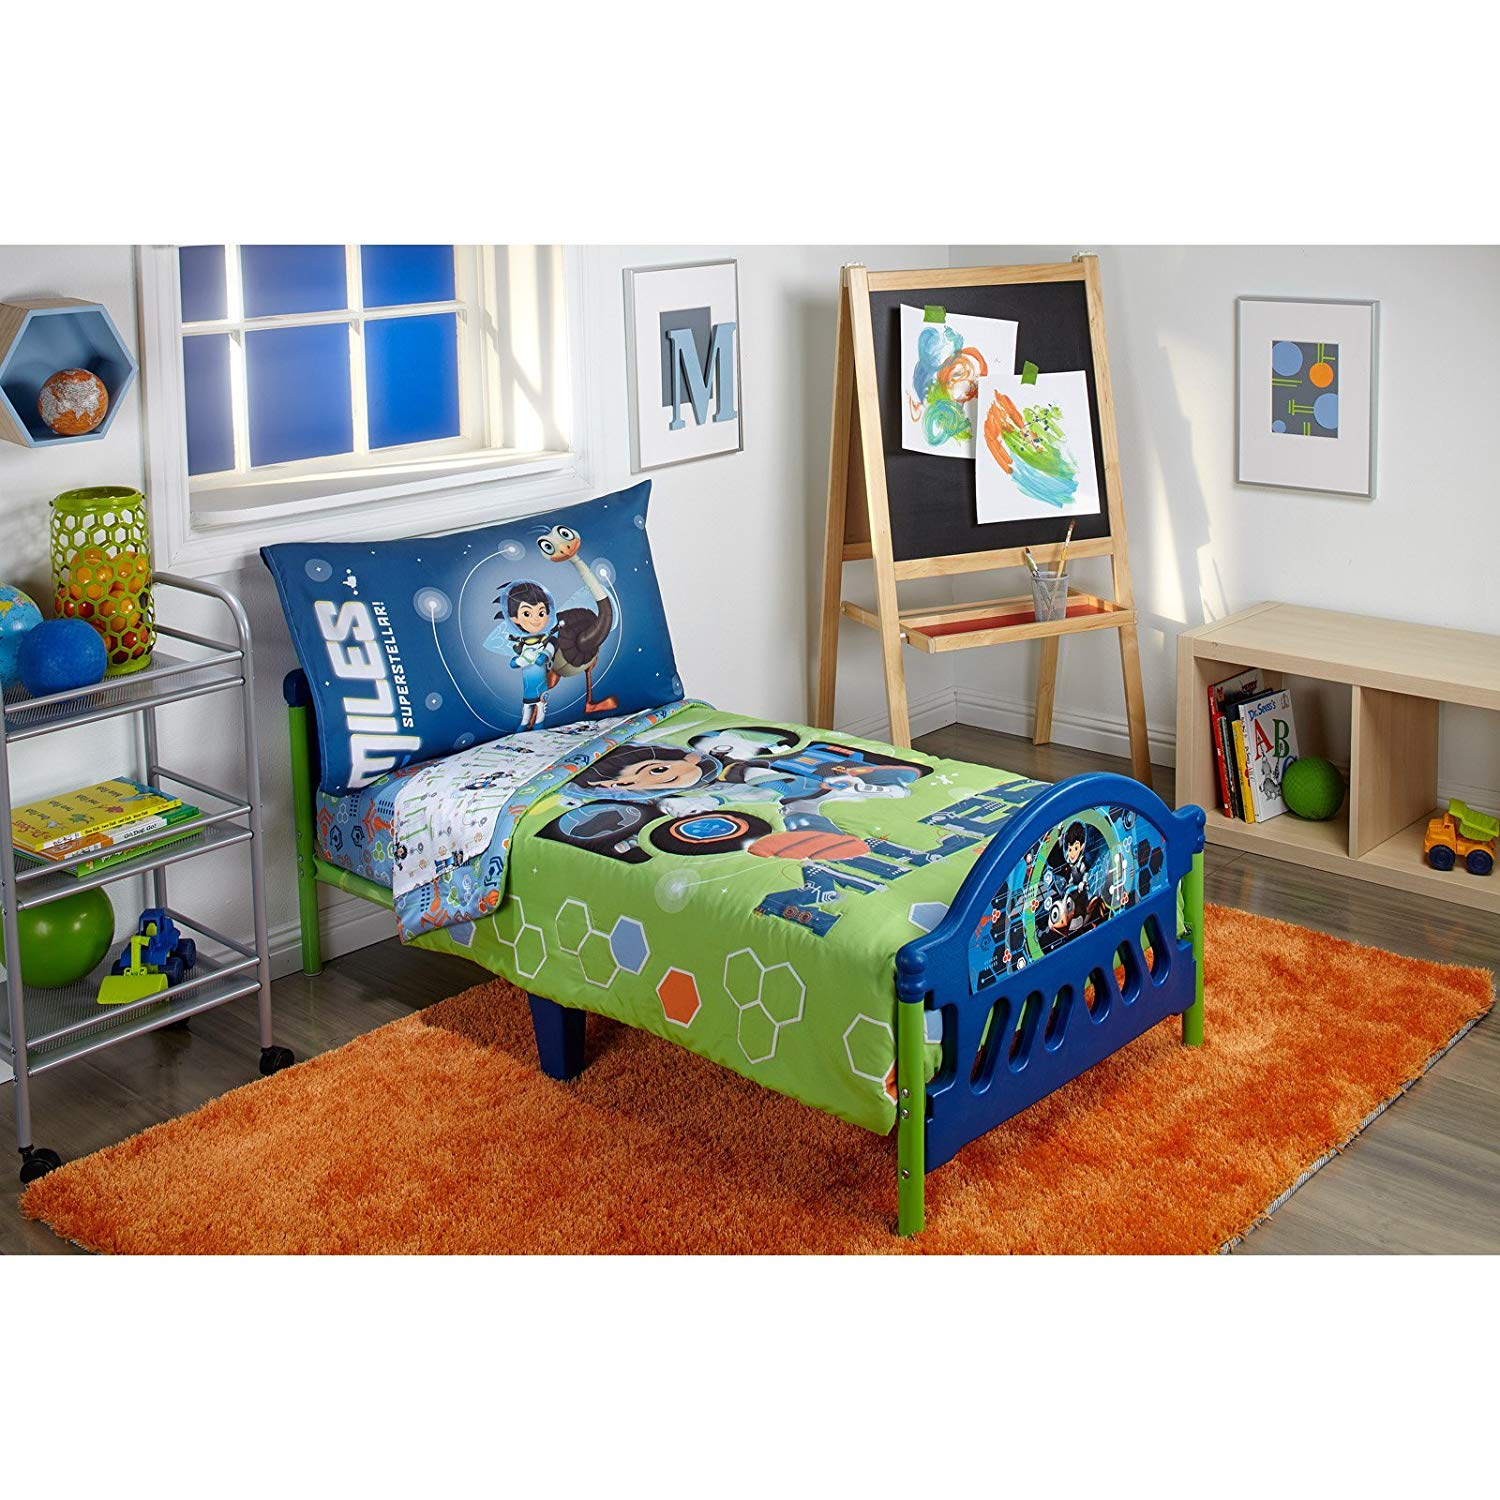 A&L 4 Piece Boys Green Miles from Tomorrowland Toddler Bedding, Blue Robo Ostrich Toddler Bedspread Set Space Adventure Miles Callisto Toddler Set Geometric Hexagon Tv Show Multi Colored, Polyester